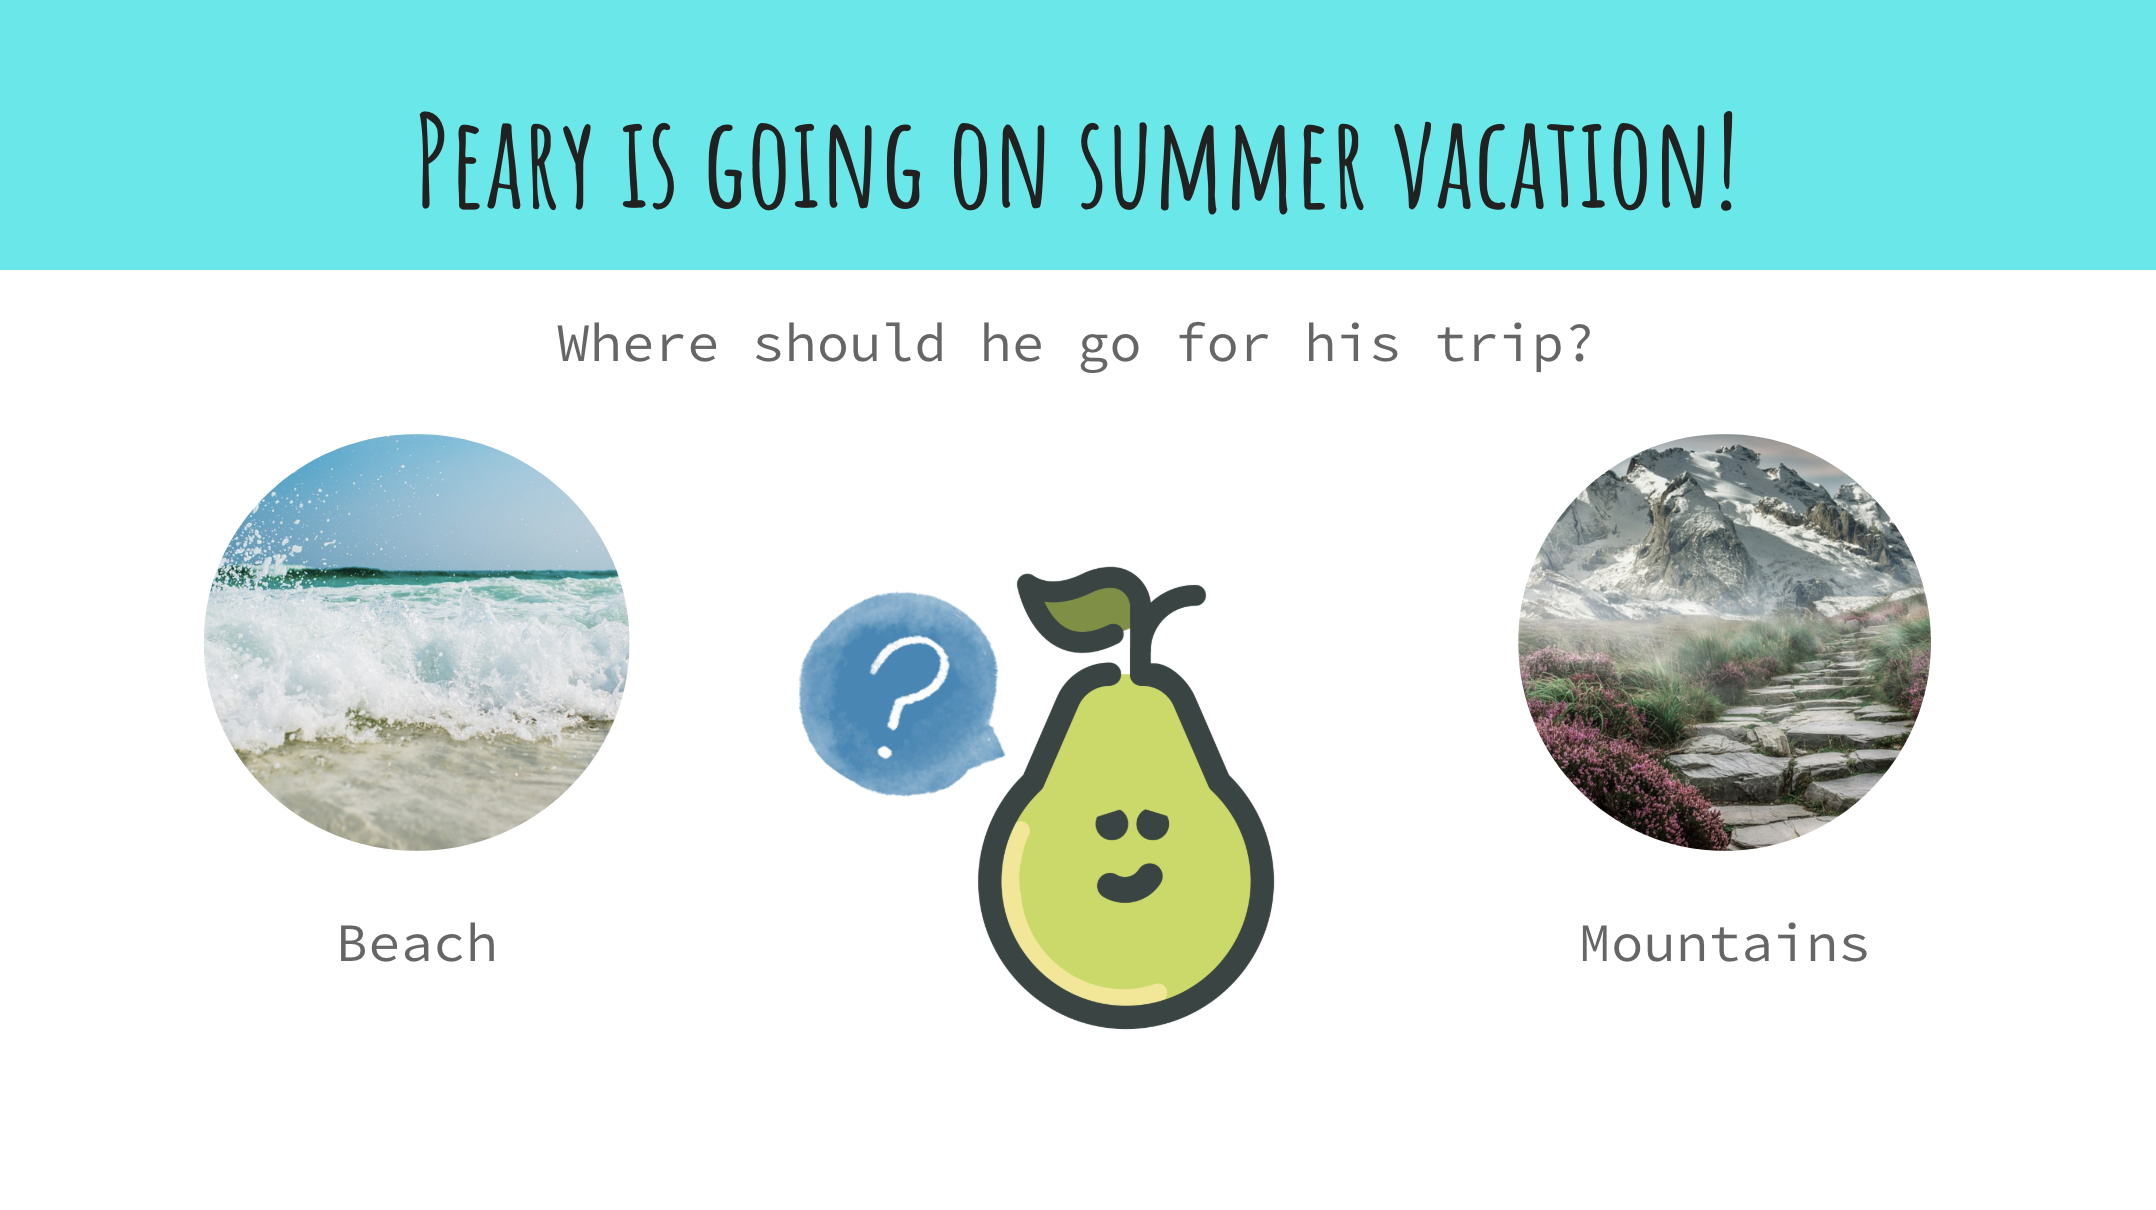 Peary is going on summer vacation!